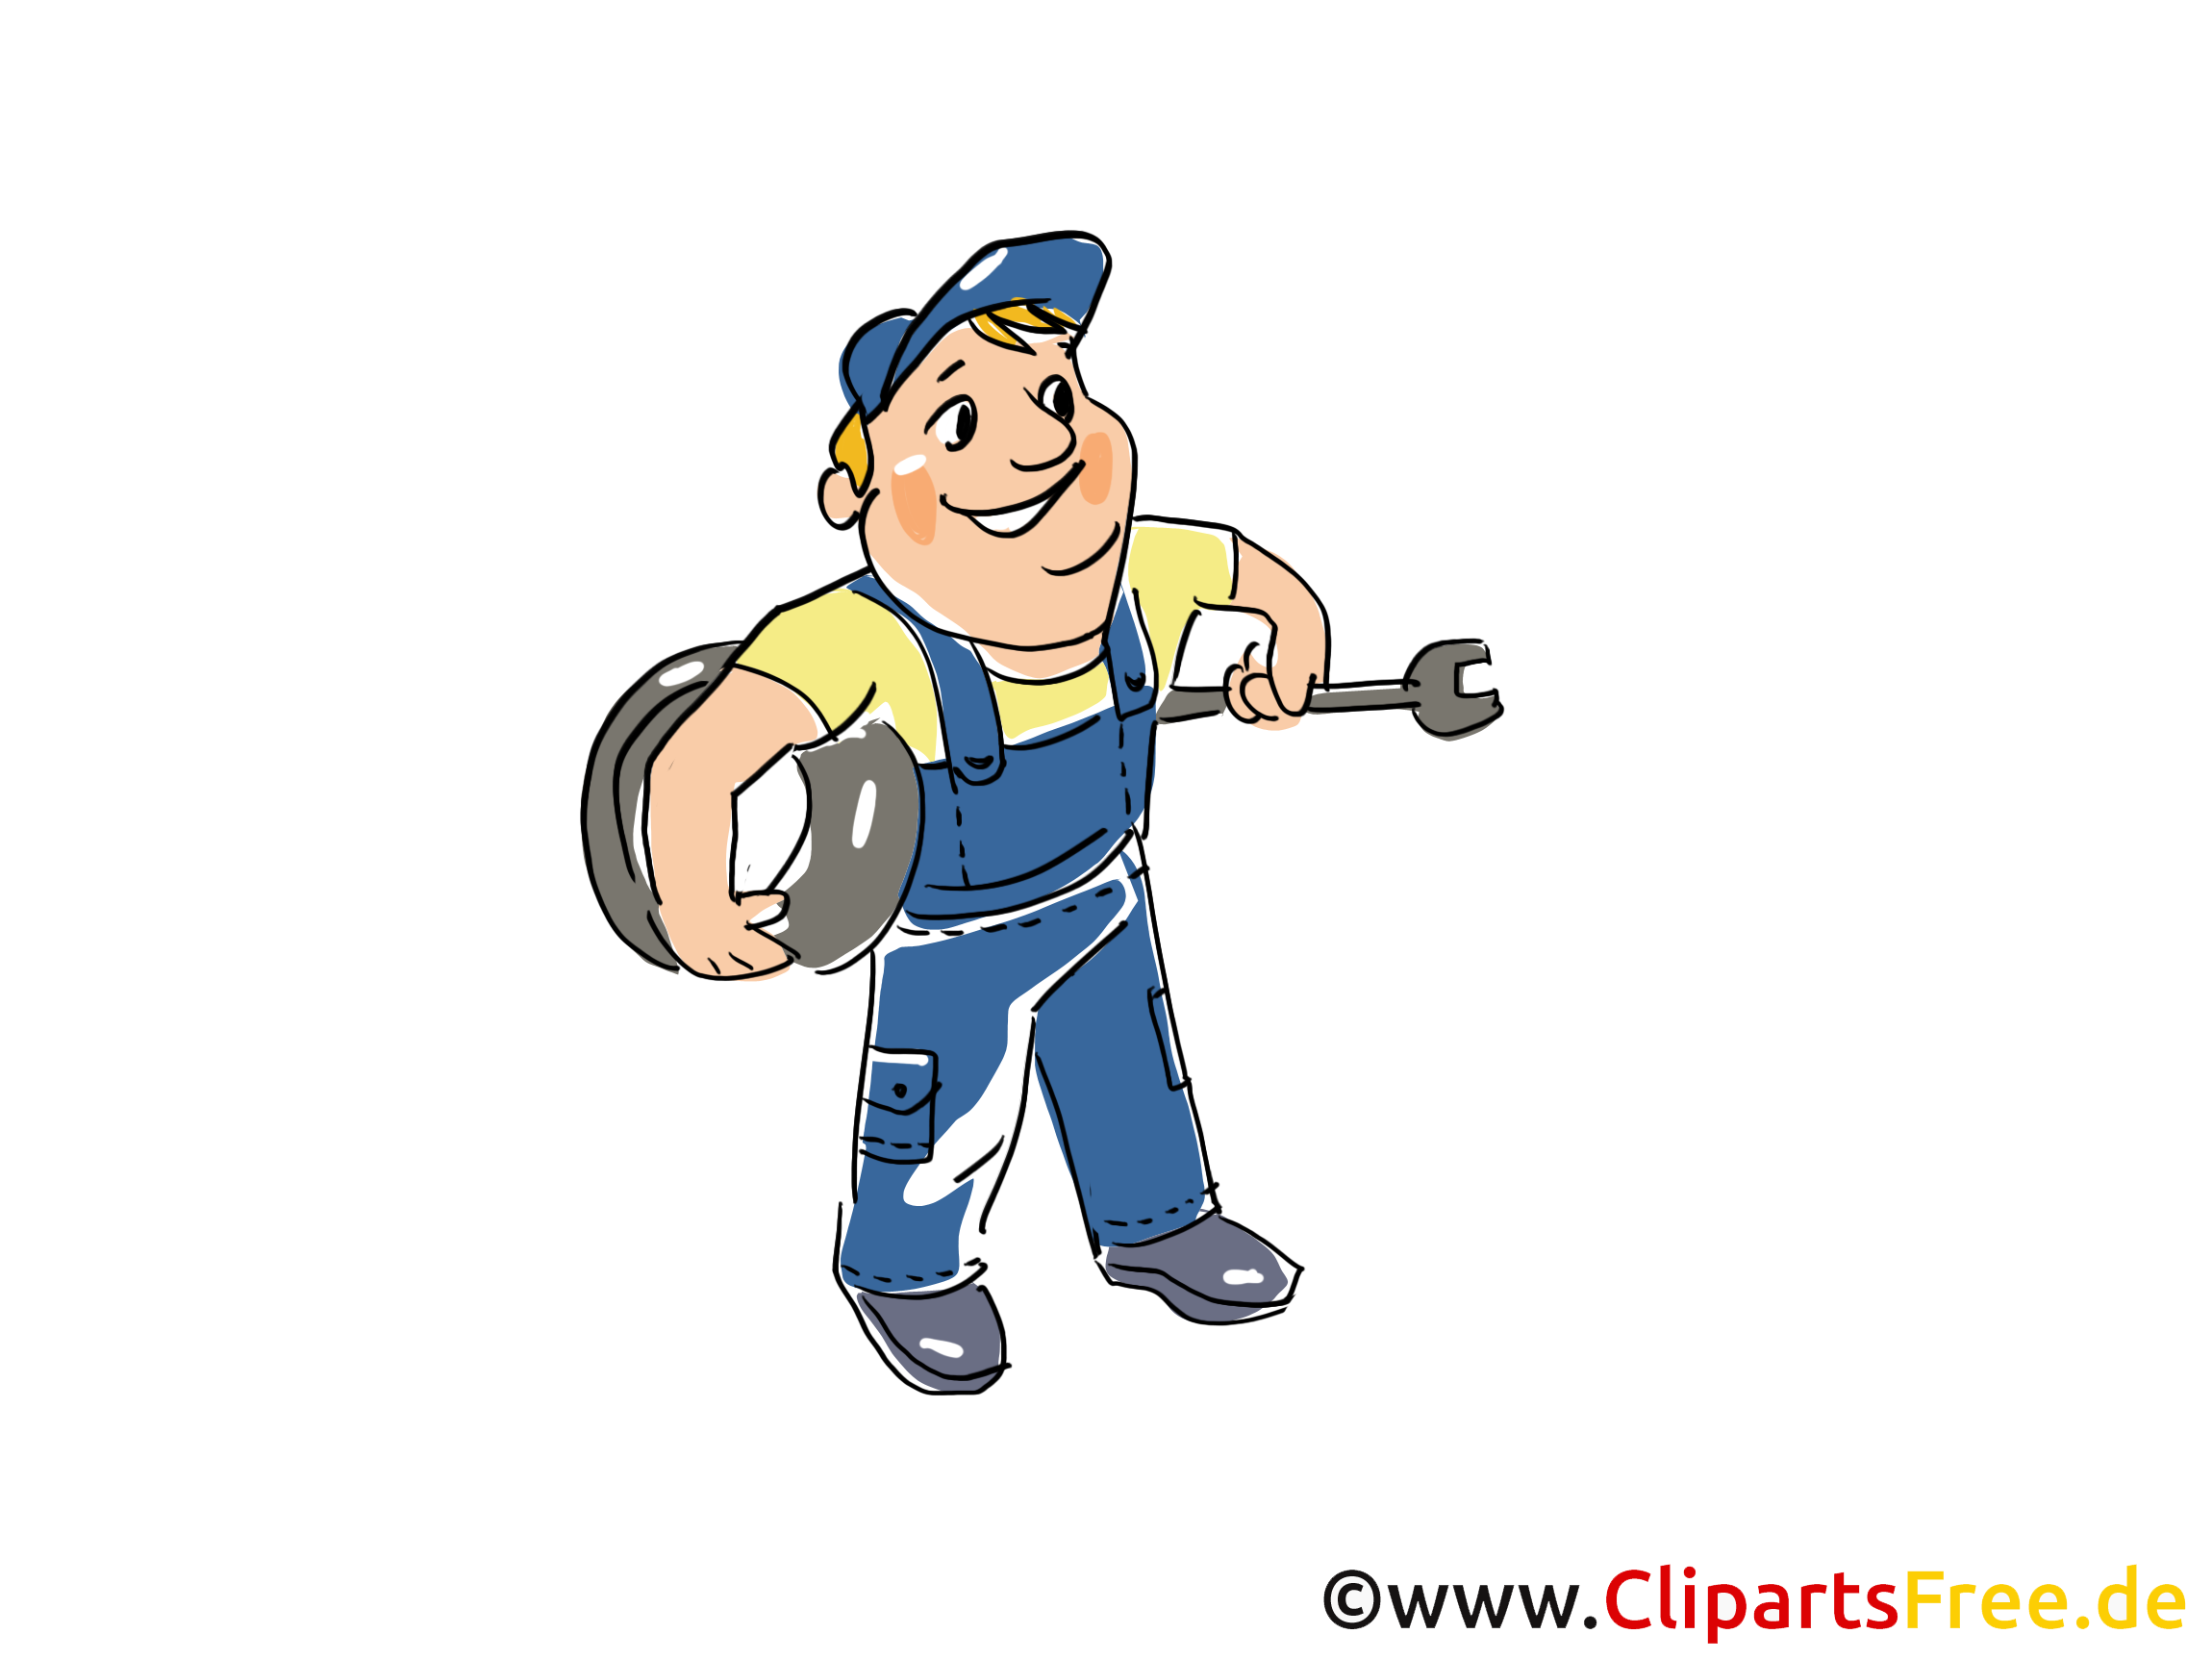 Reifenservice Clipart, Bild, Grafik, Cartoon, Illustration gratis